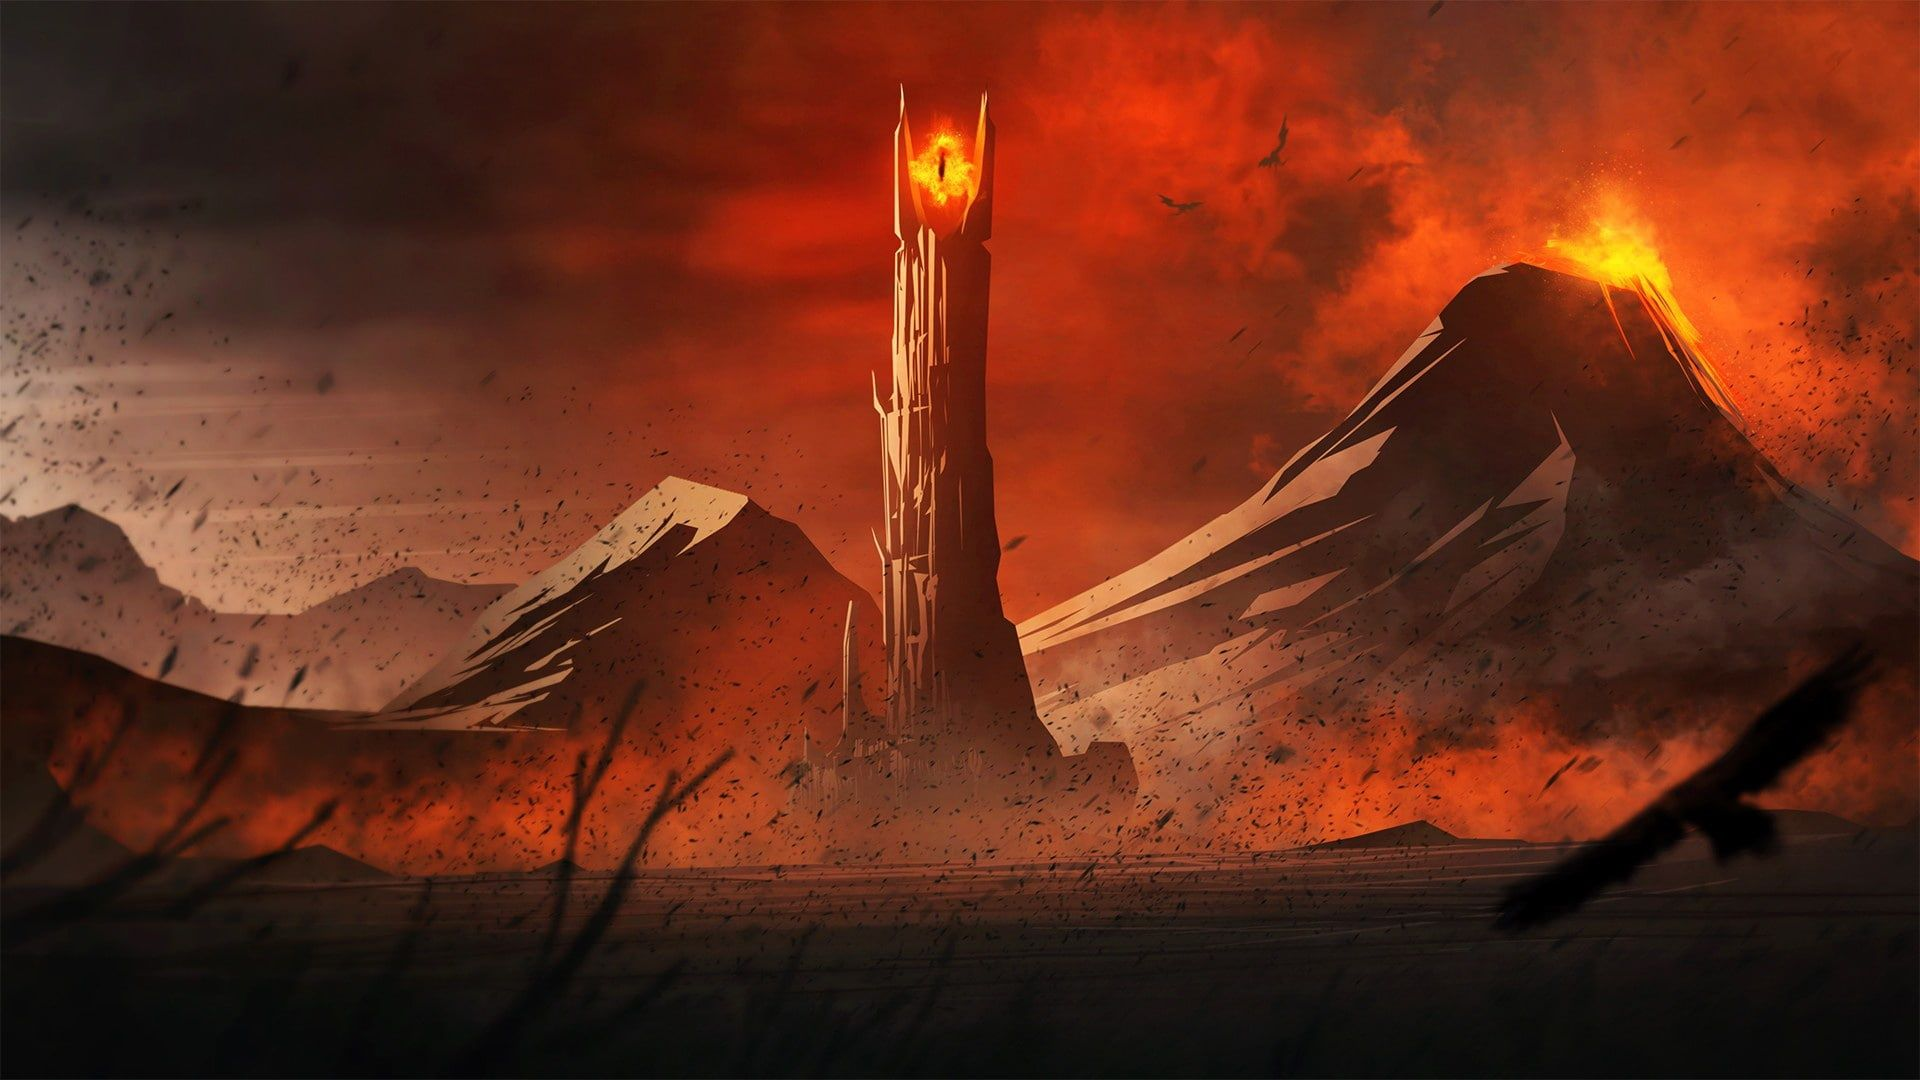 Lord Of The Rings Mordor Mount Doom Eye Of Sauron 1080p Wallpaper Hdwallpaper Desktop Mordor Lord Of The Rings Eyes Wallpaper